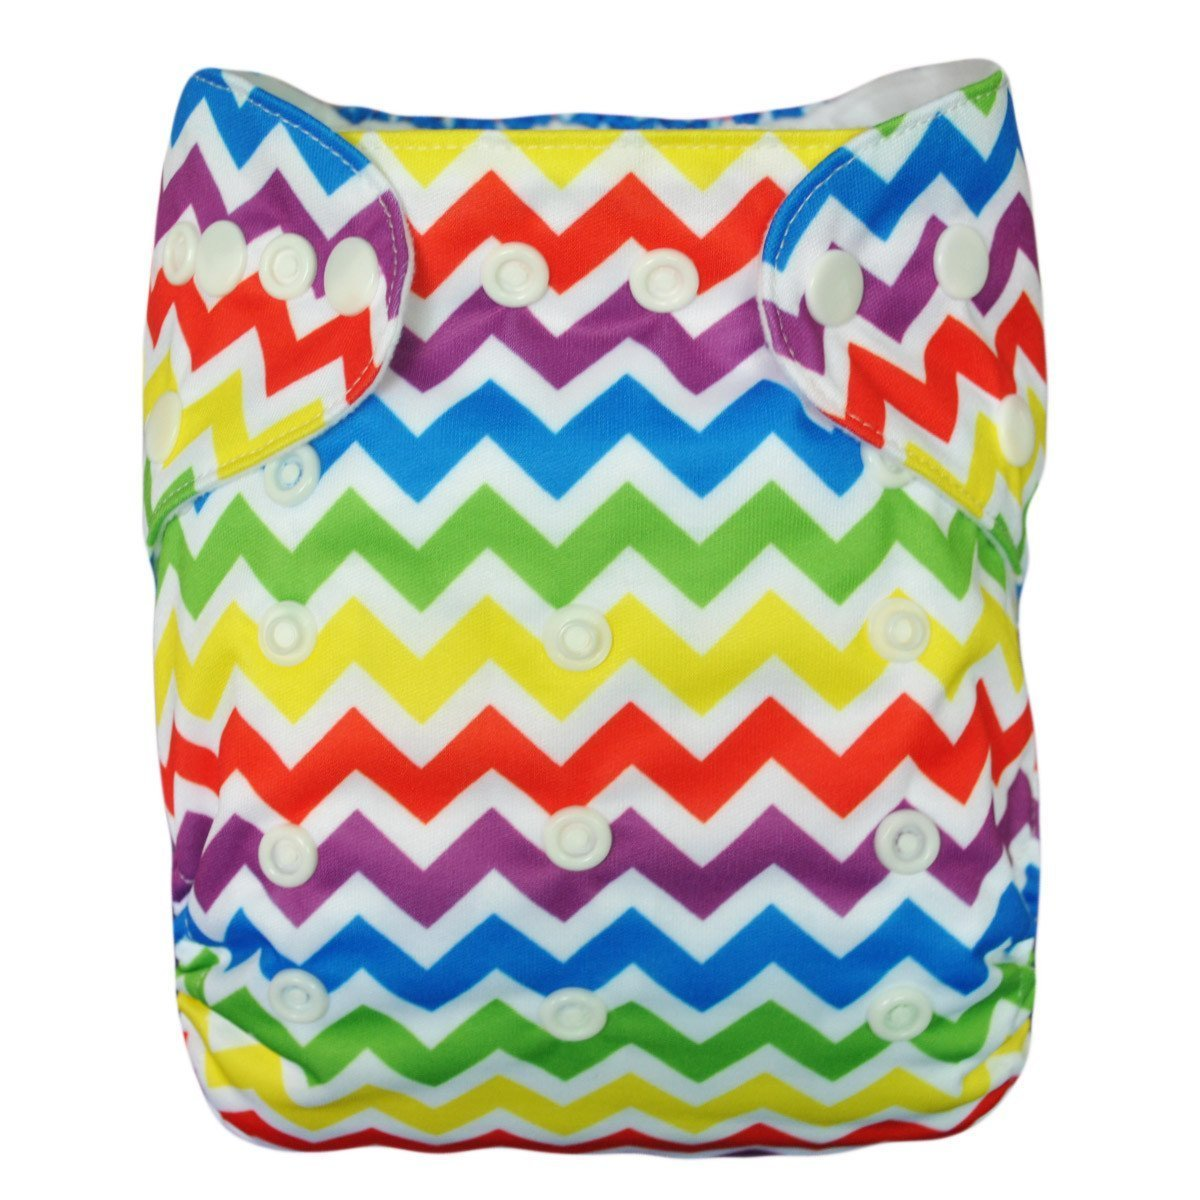 Express the Best Cloth Re-usable Nappy Pack - Rainbow Zig Zag - Naked Baby Eco Boutique